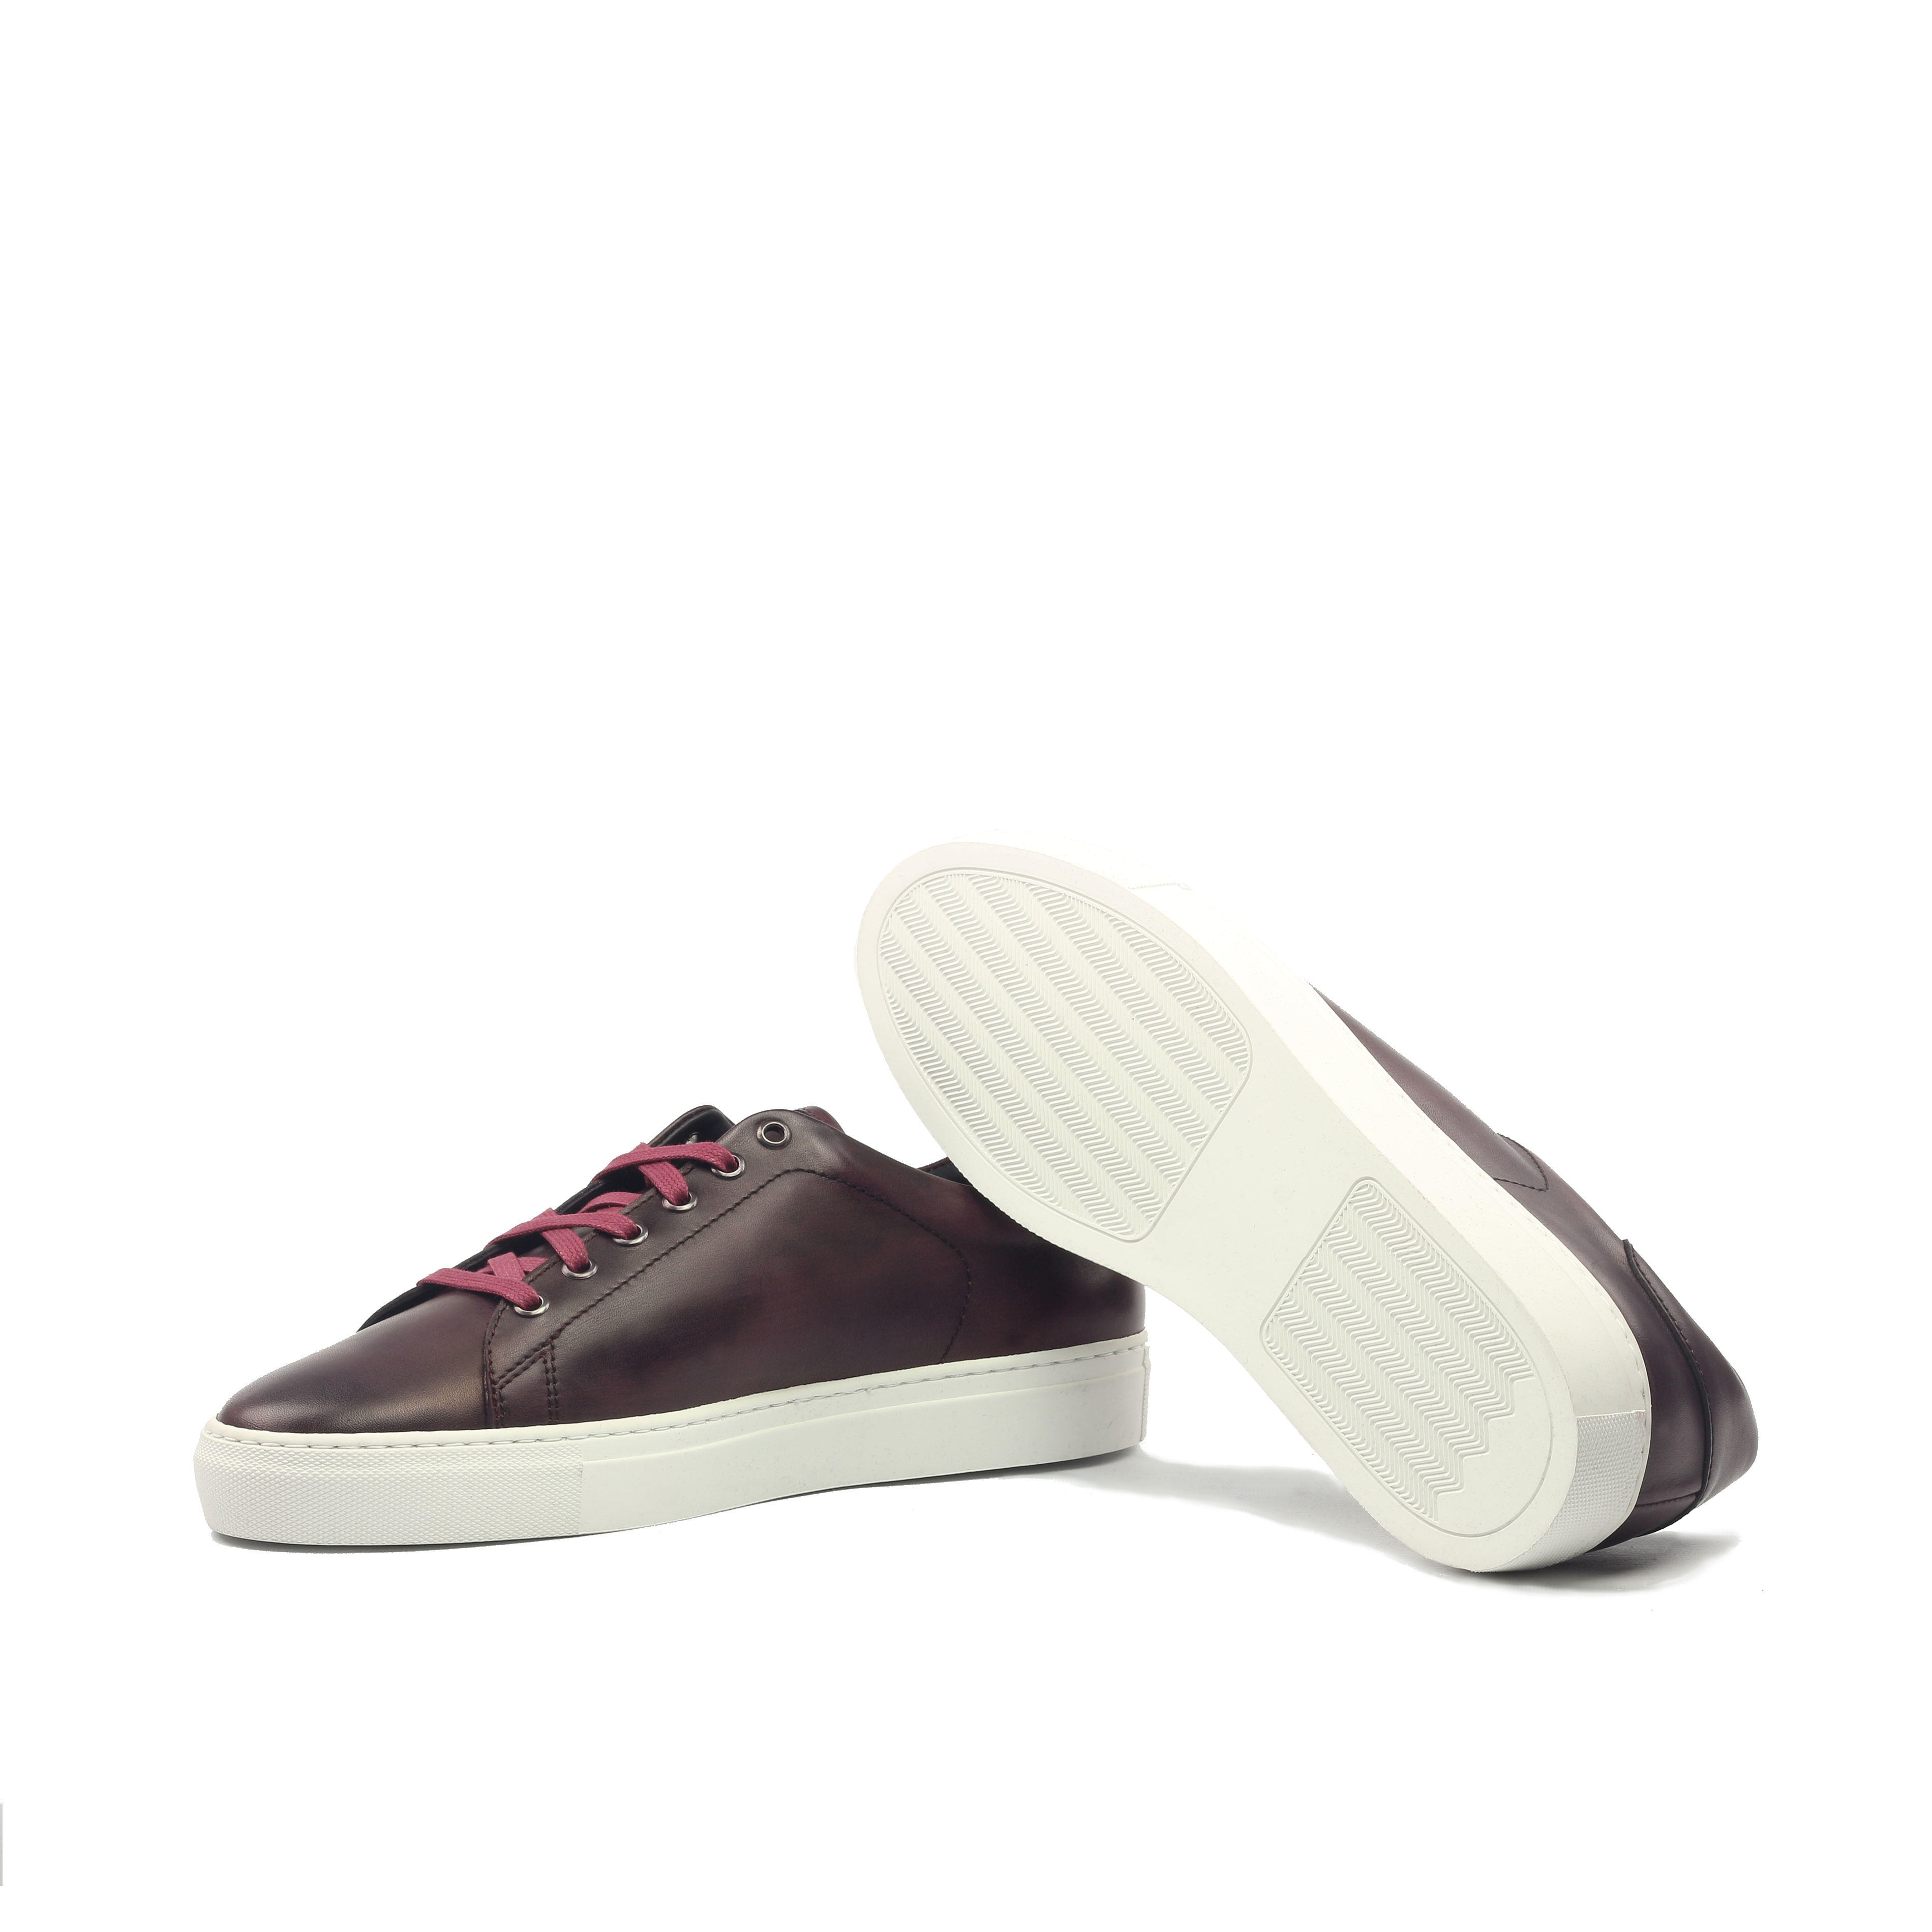 MANOR OF LONDON 'The Perry' Painted Oxblood Calfskin Tennis Trainer Luxury Custom Initials Monogrammed Bottom Side View